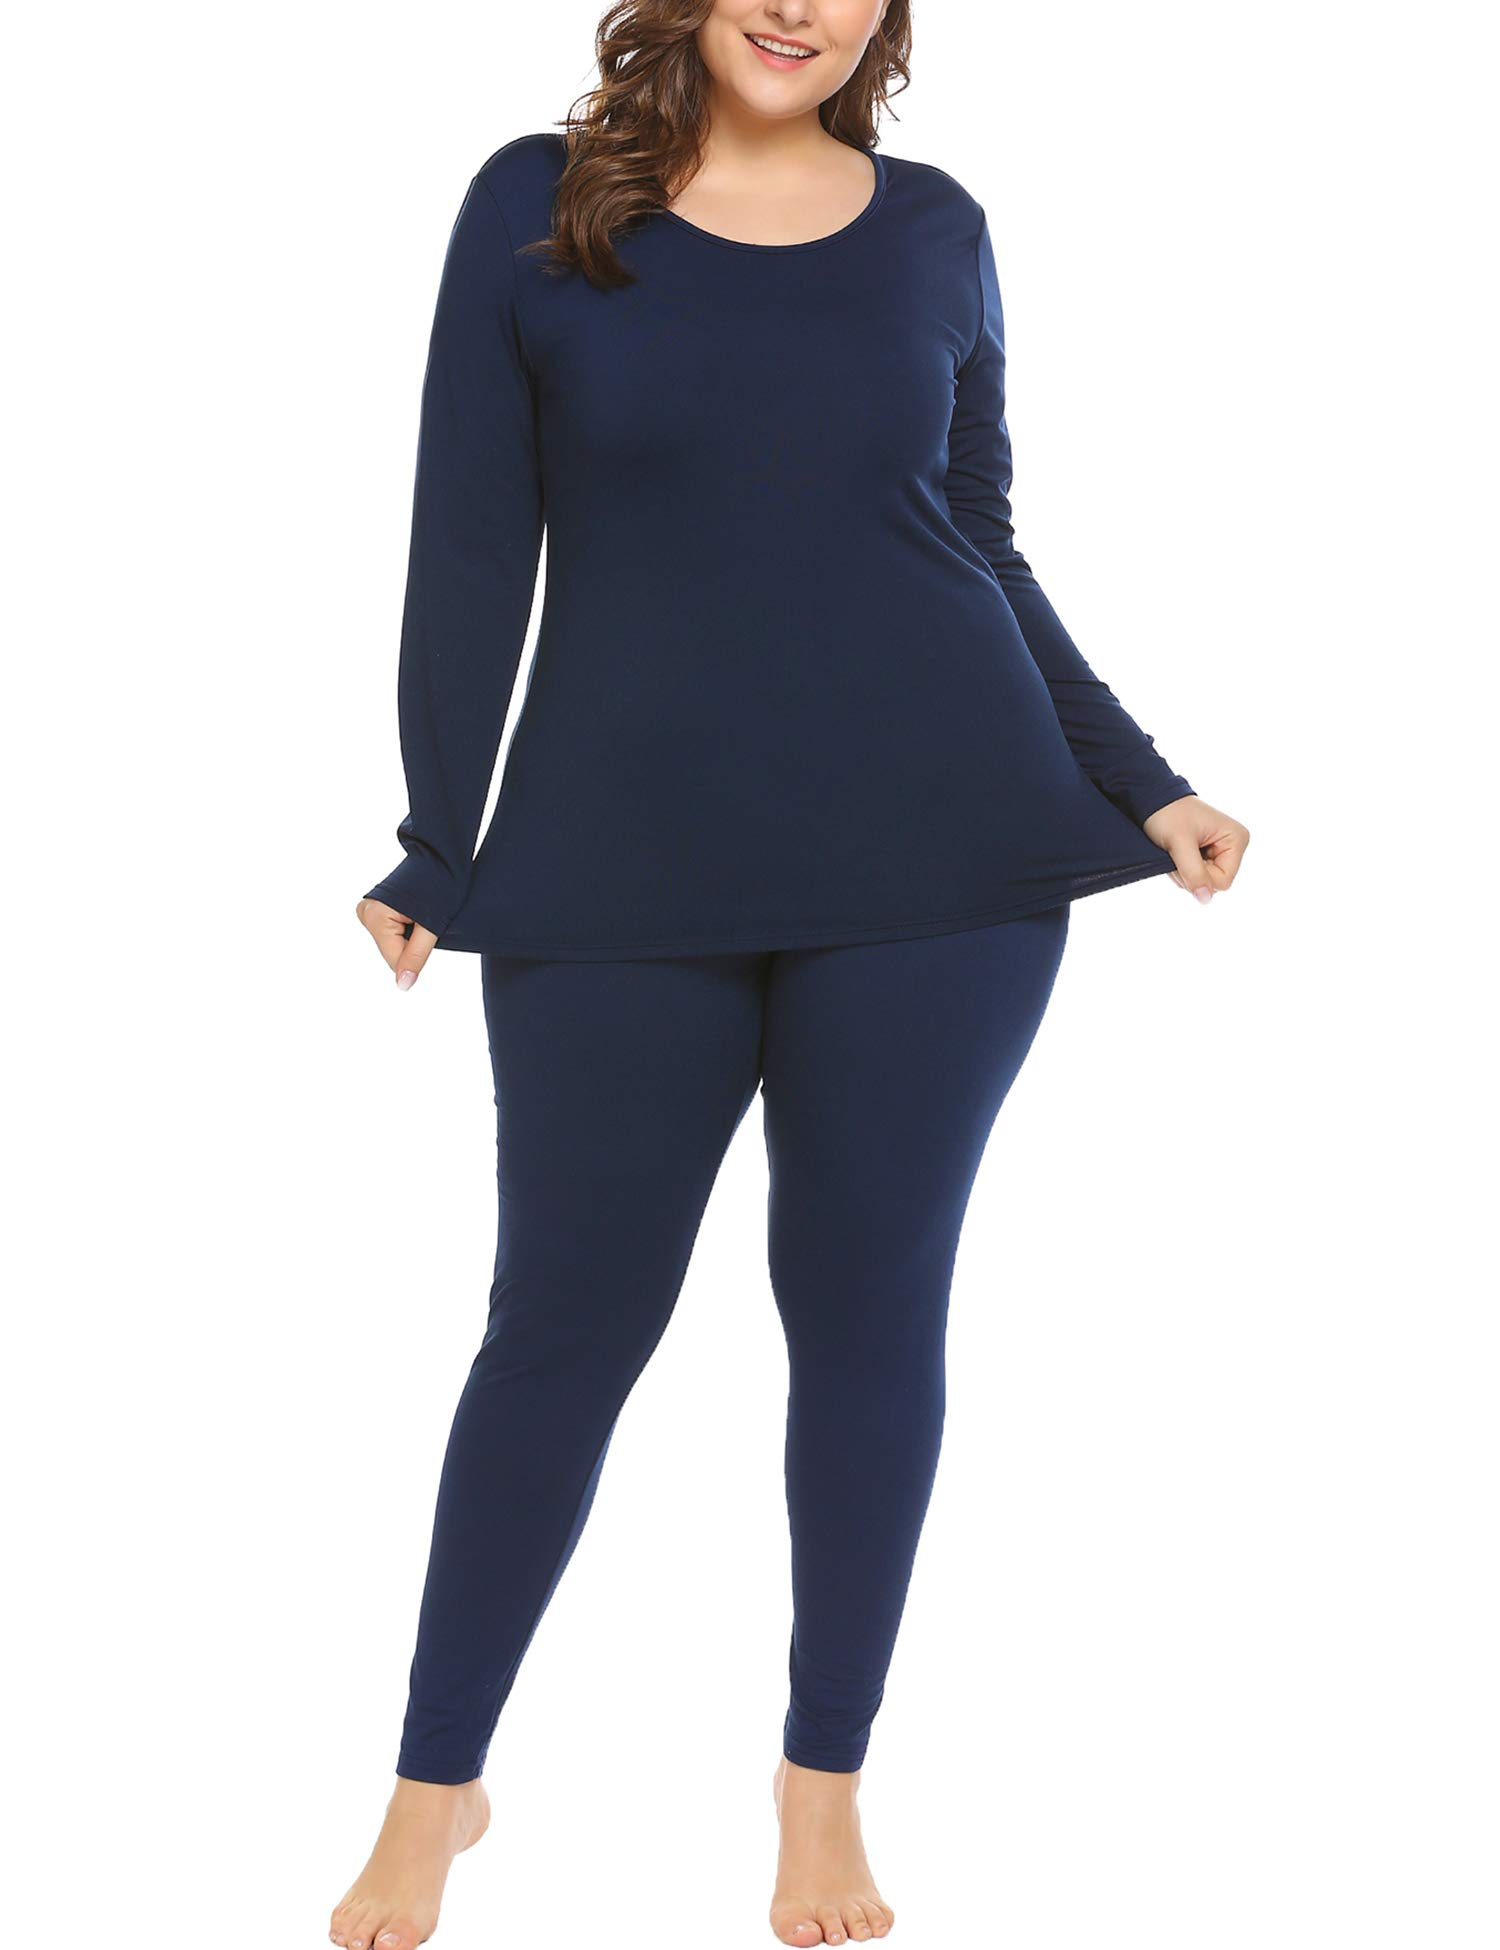 In'voland Women's Thermal Underwear Set Top & Bottom Fleece Lined Champlain Colour 16W by IN'VOLAND